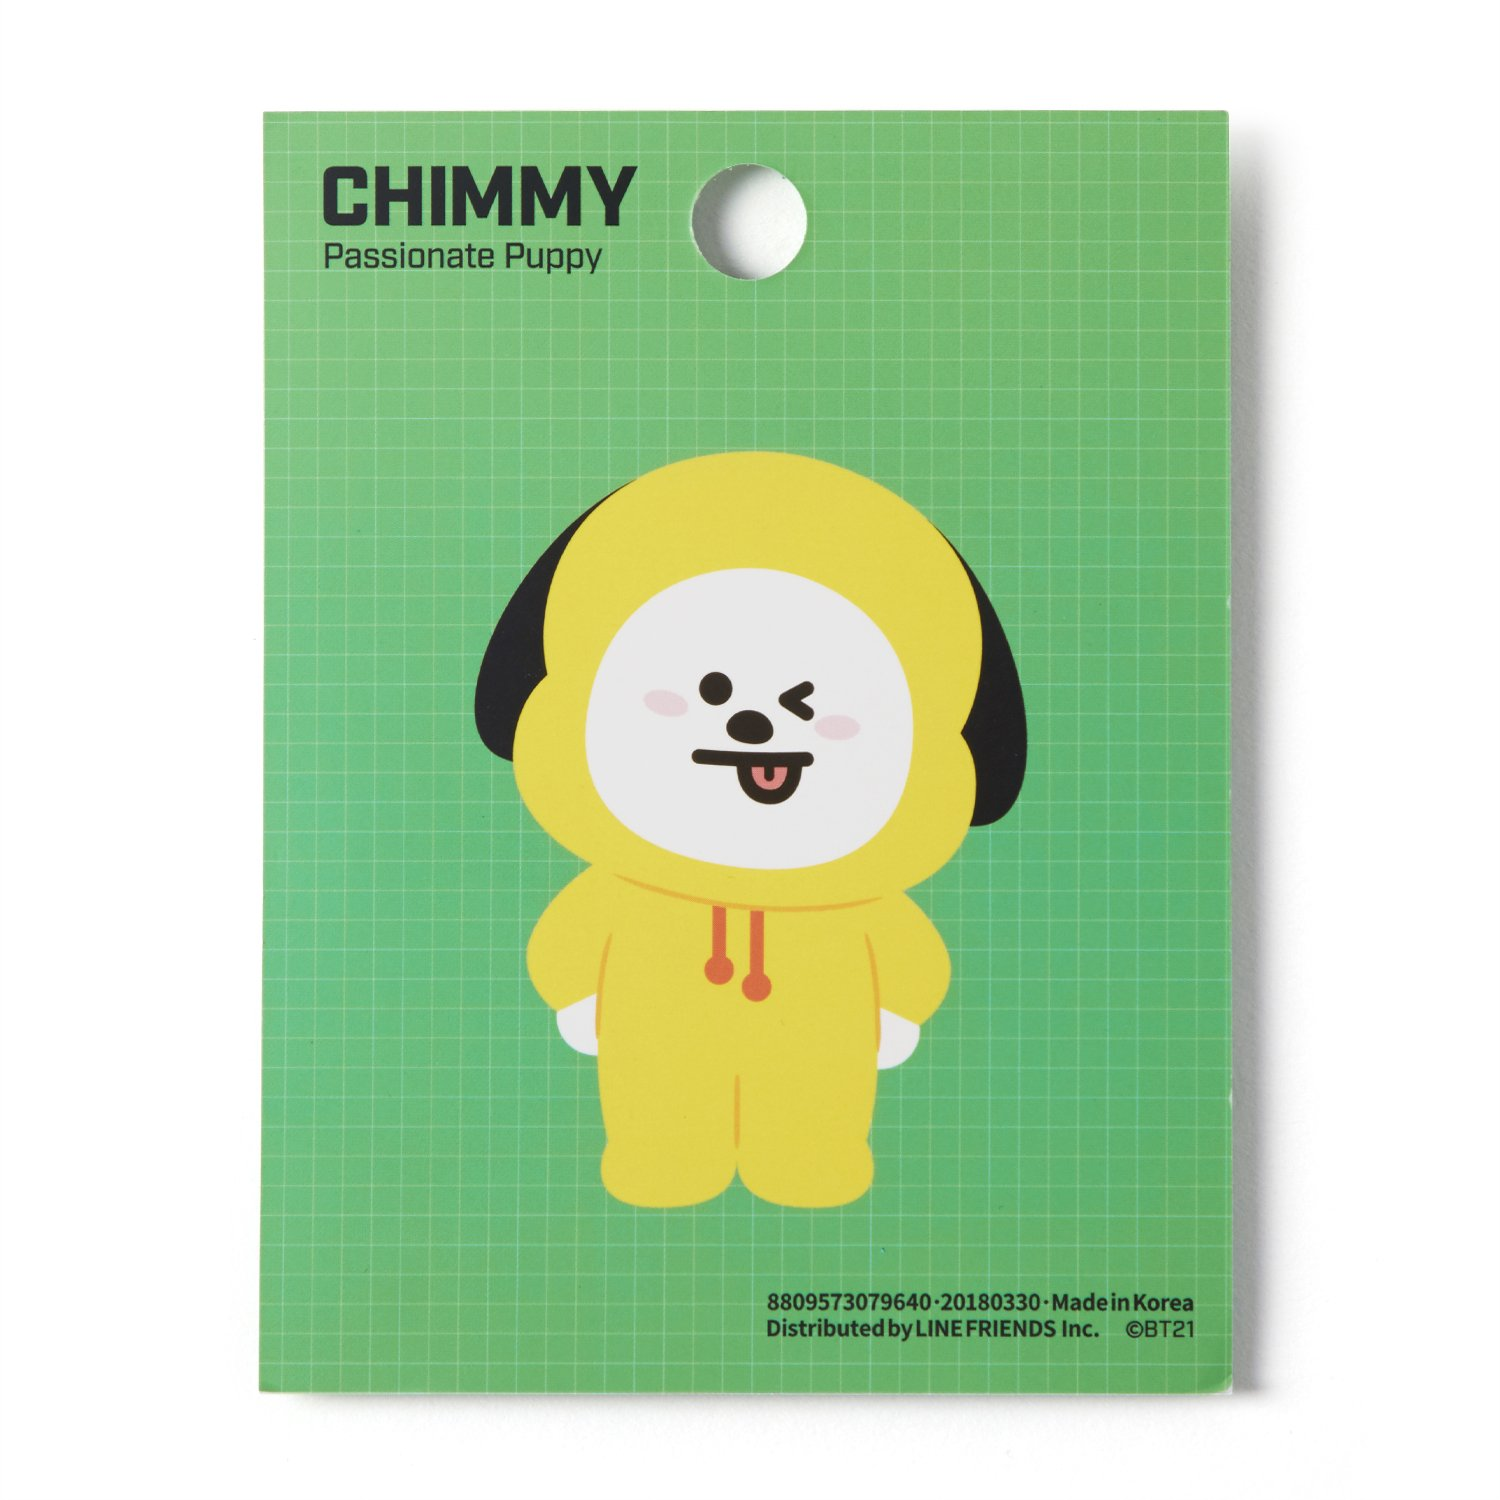 Amazon.com : BT21 Official Merchandise by Line Friends - CHIMMY Character Cute 3pc Office Supplies Set with File Folder, Sticky Note, and Mouse Pad : Office ...